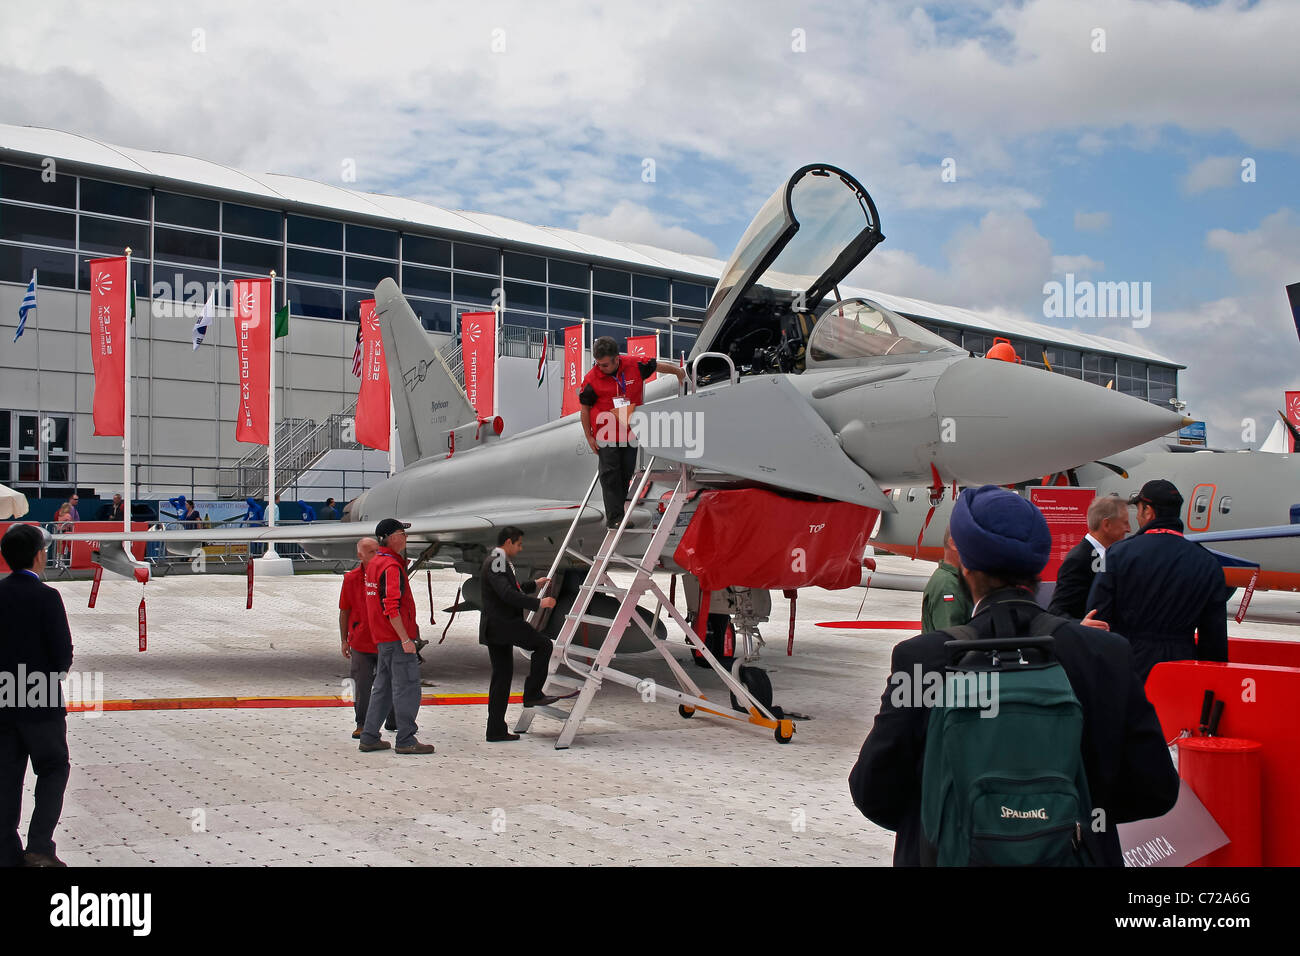 Display by the BAE Systems Eurofighter Typhoon at the Farnborough International Airshow - Stock Image